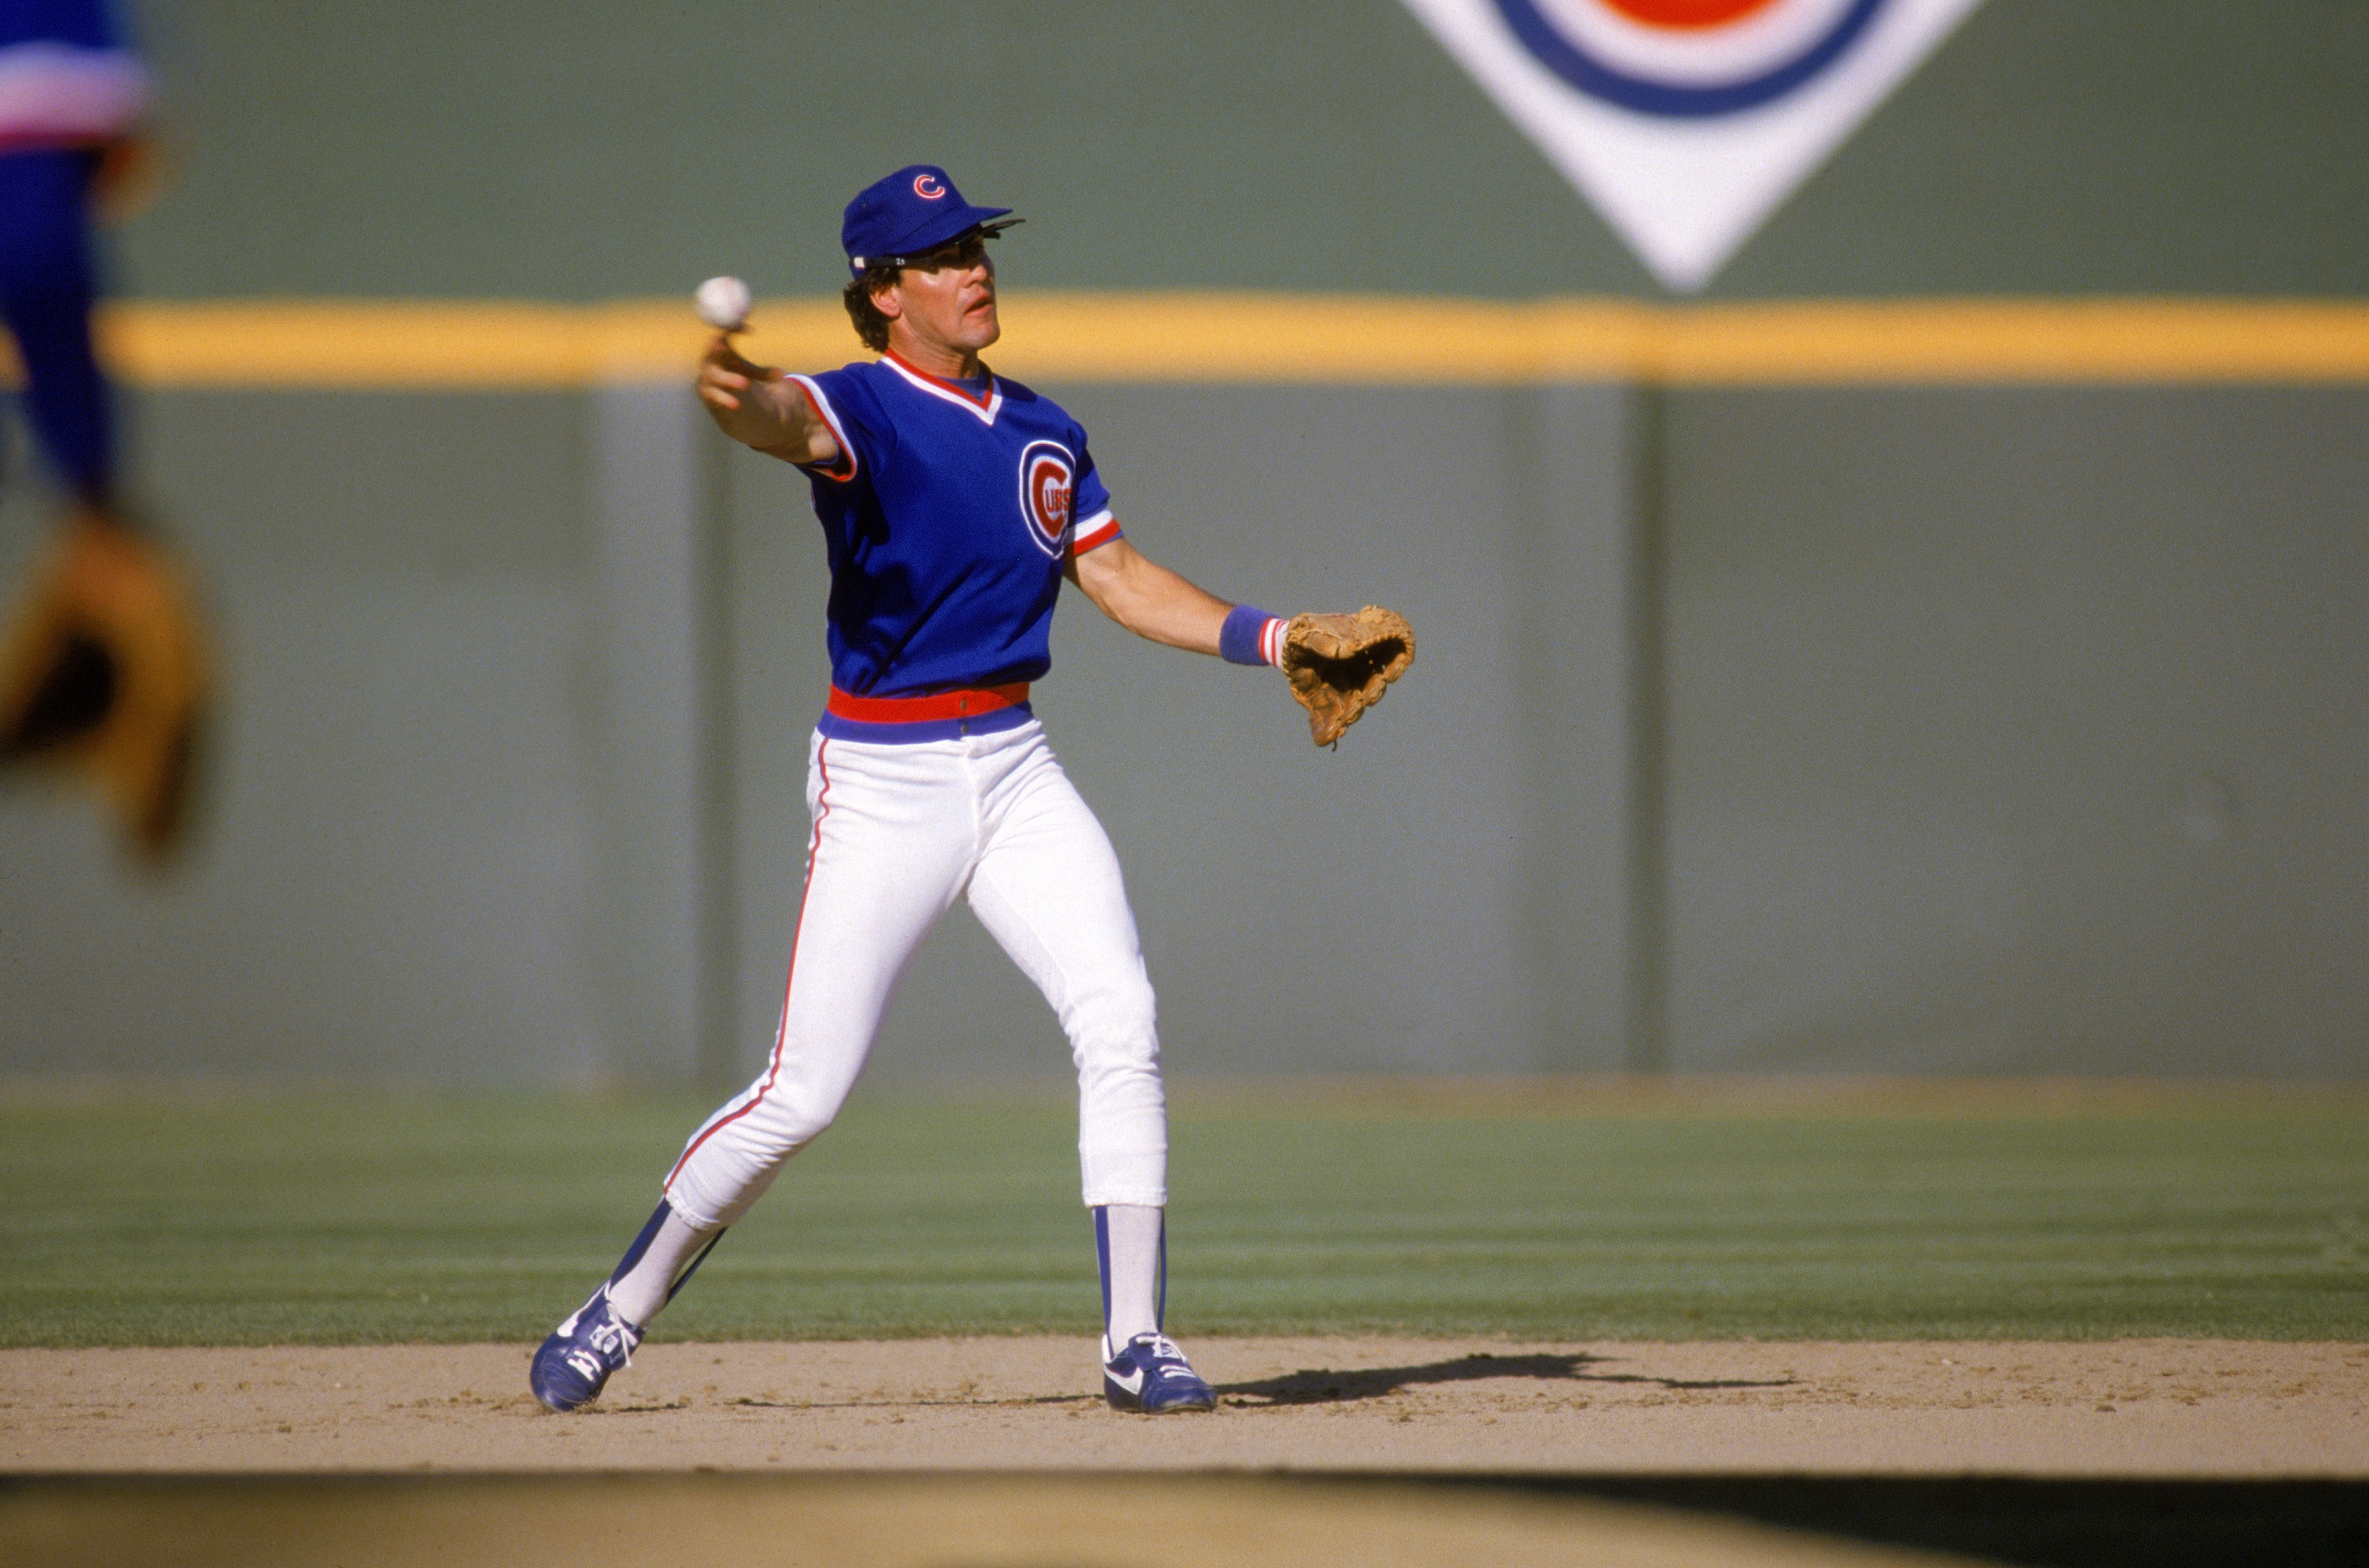 SAN DIEGO -1986: Ryne Sandberg #23 of the Chicago Cubs throws the ball during a game against the San Diego Padres in 1986 at Jack Murphy Stadium in San Diego, California.  (Photo by Stephen Dunn/Getty Images)